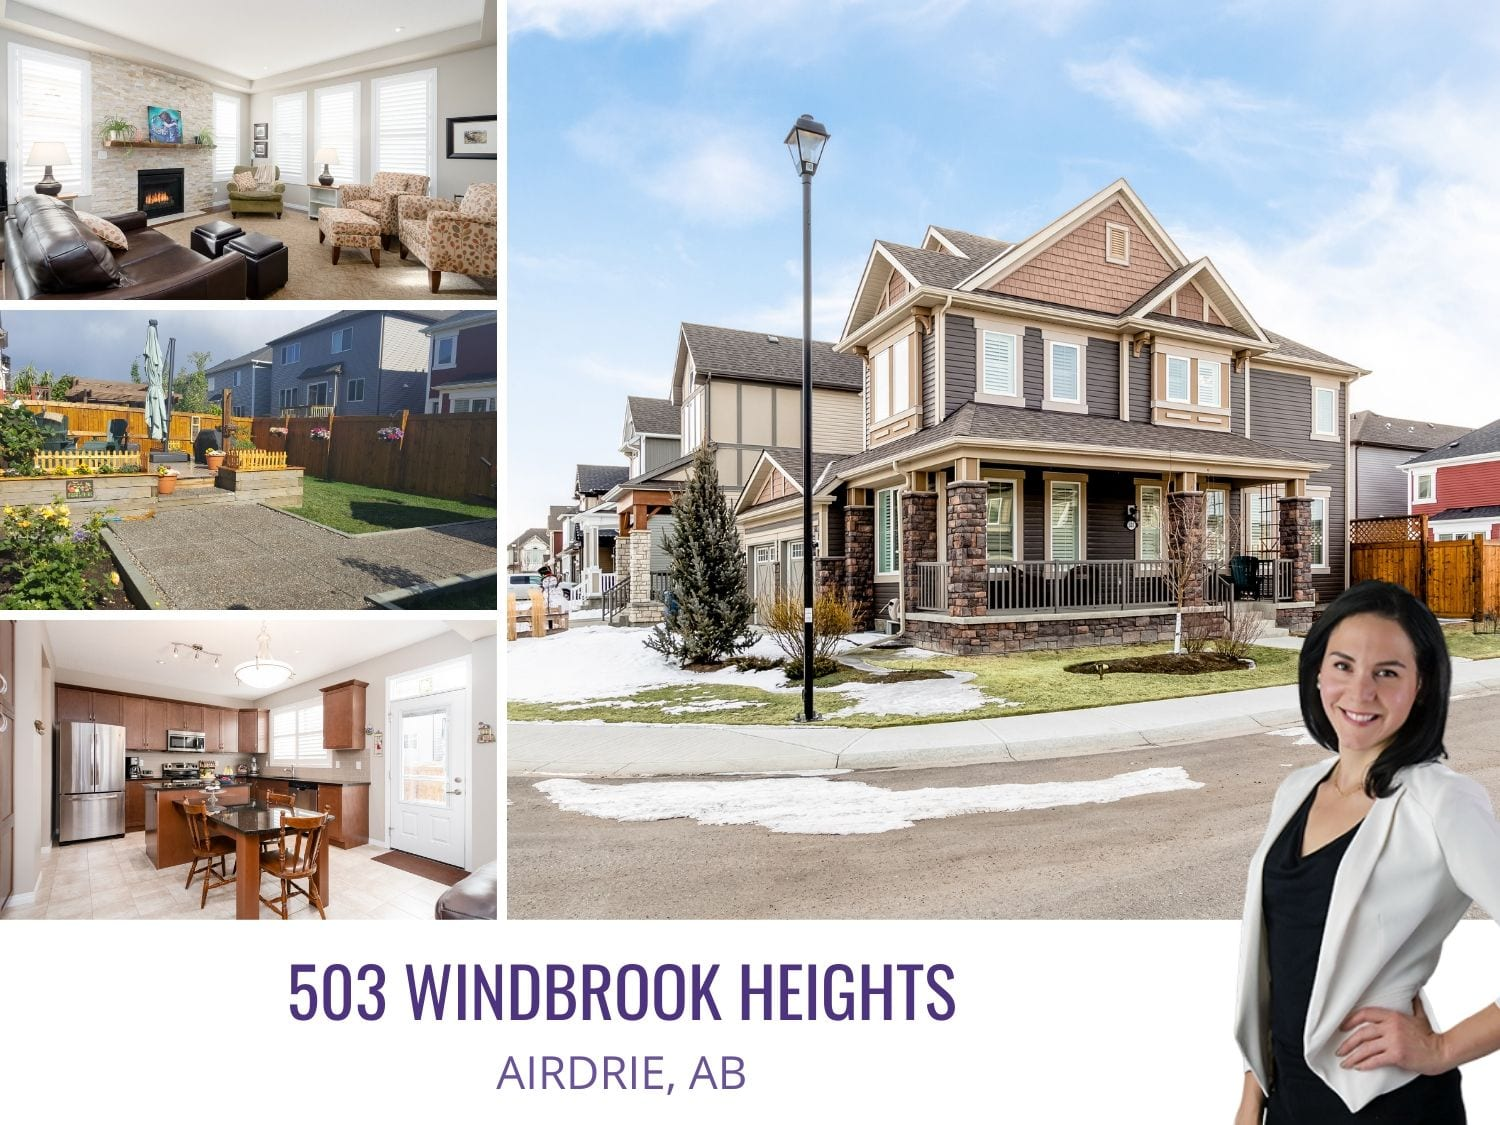 503 Windbrook Hts in Airdrie, AB